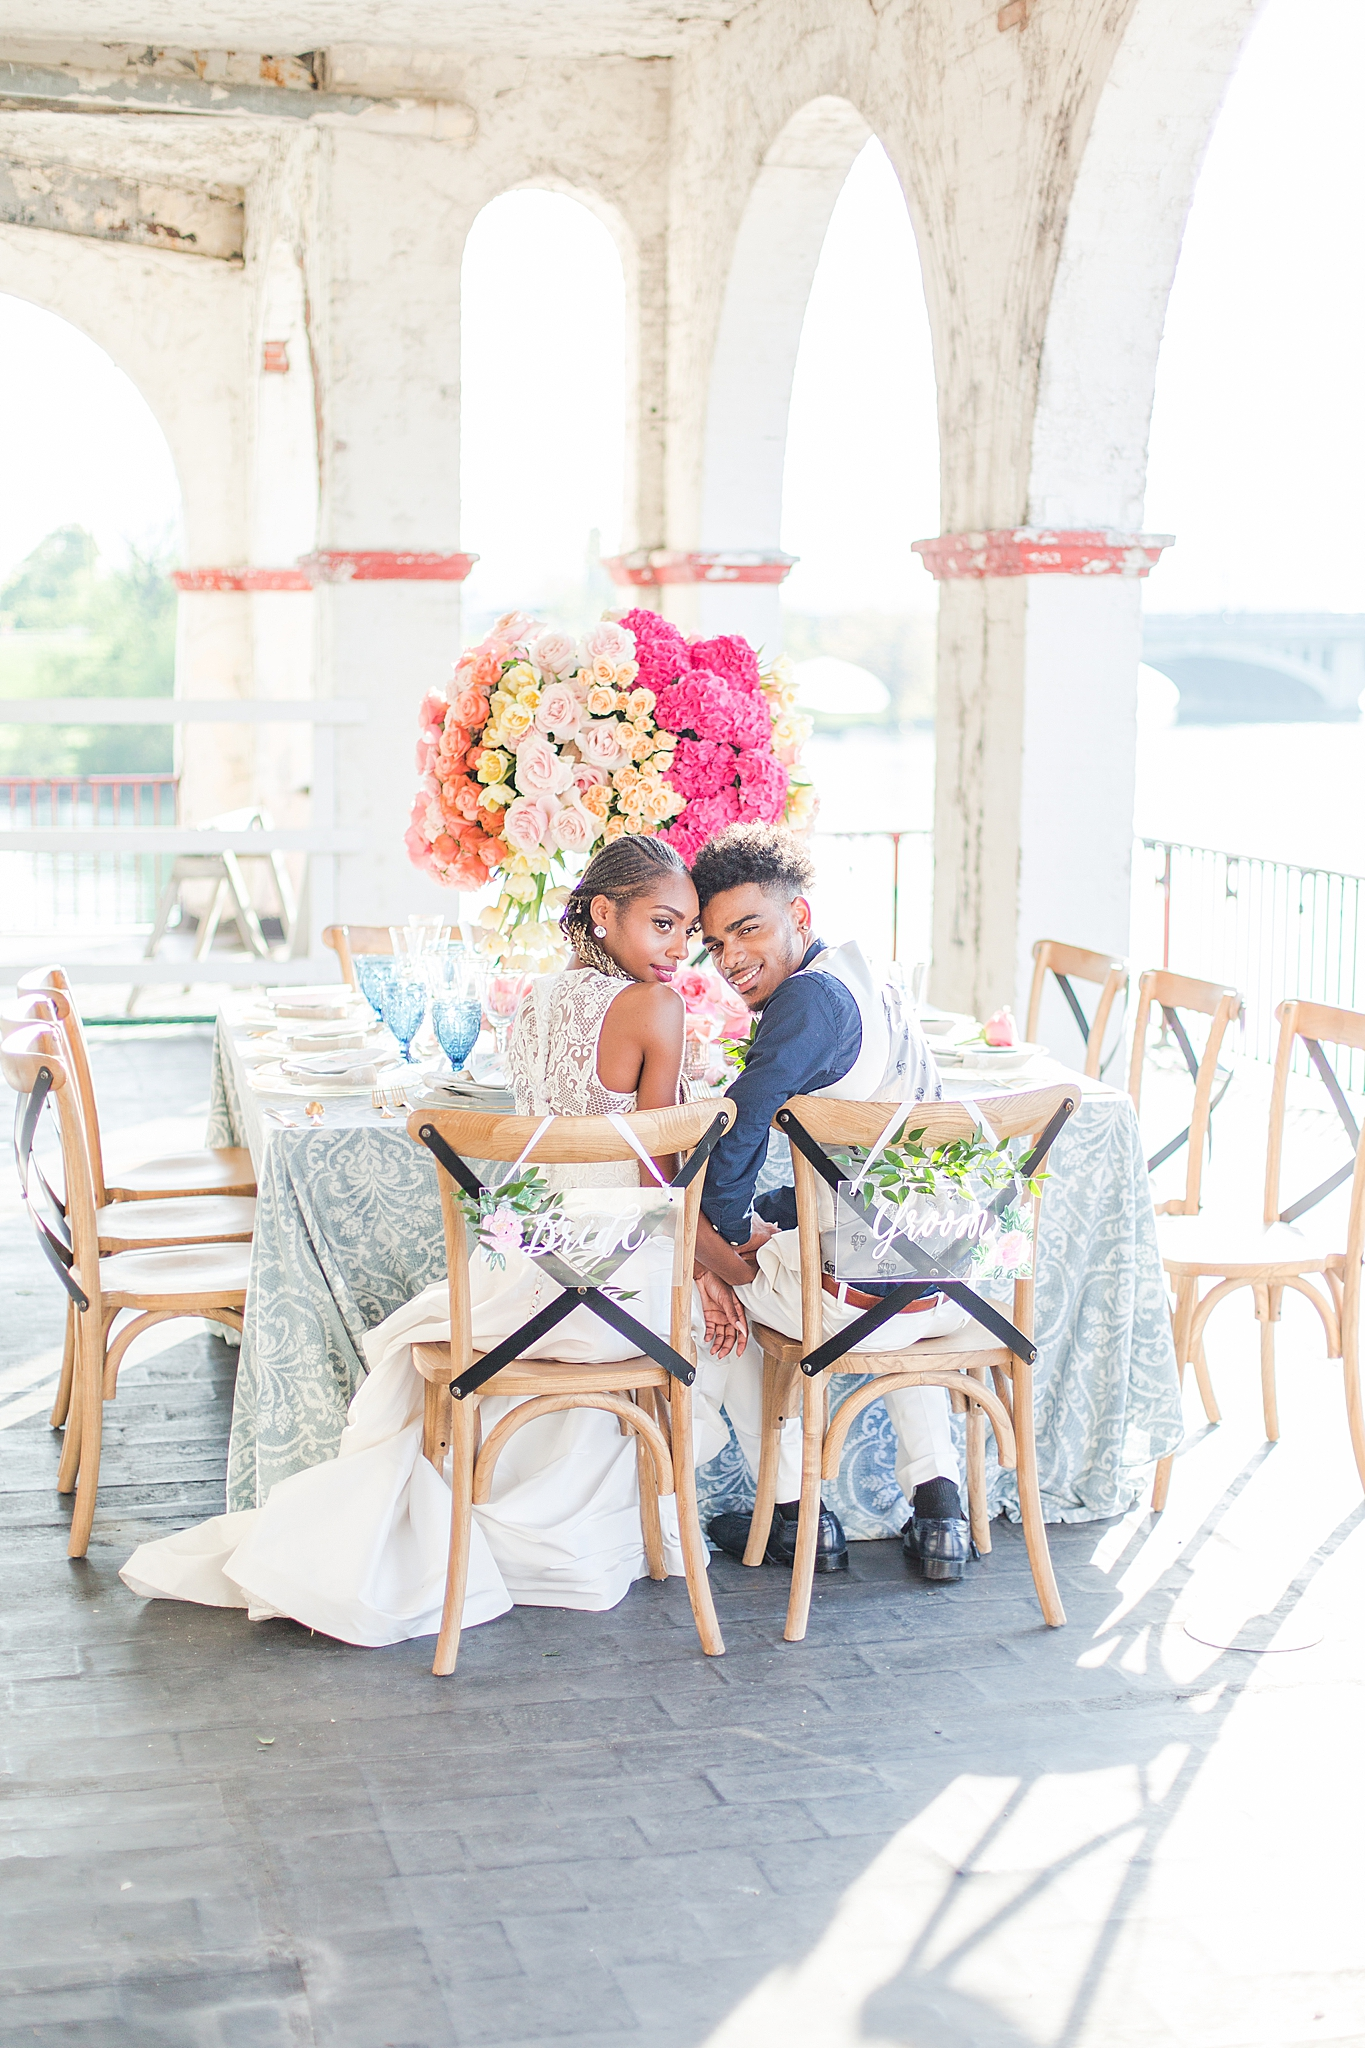 intimate-elopement-wedding-photography-at-belle-isle-boat-house-detroit-michigan-by-courtney-carolyn-photography_0068.jpg